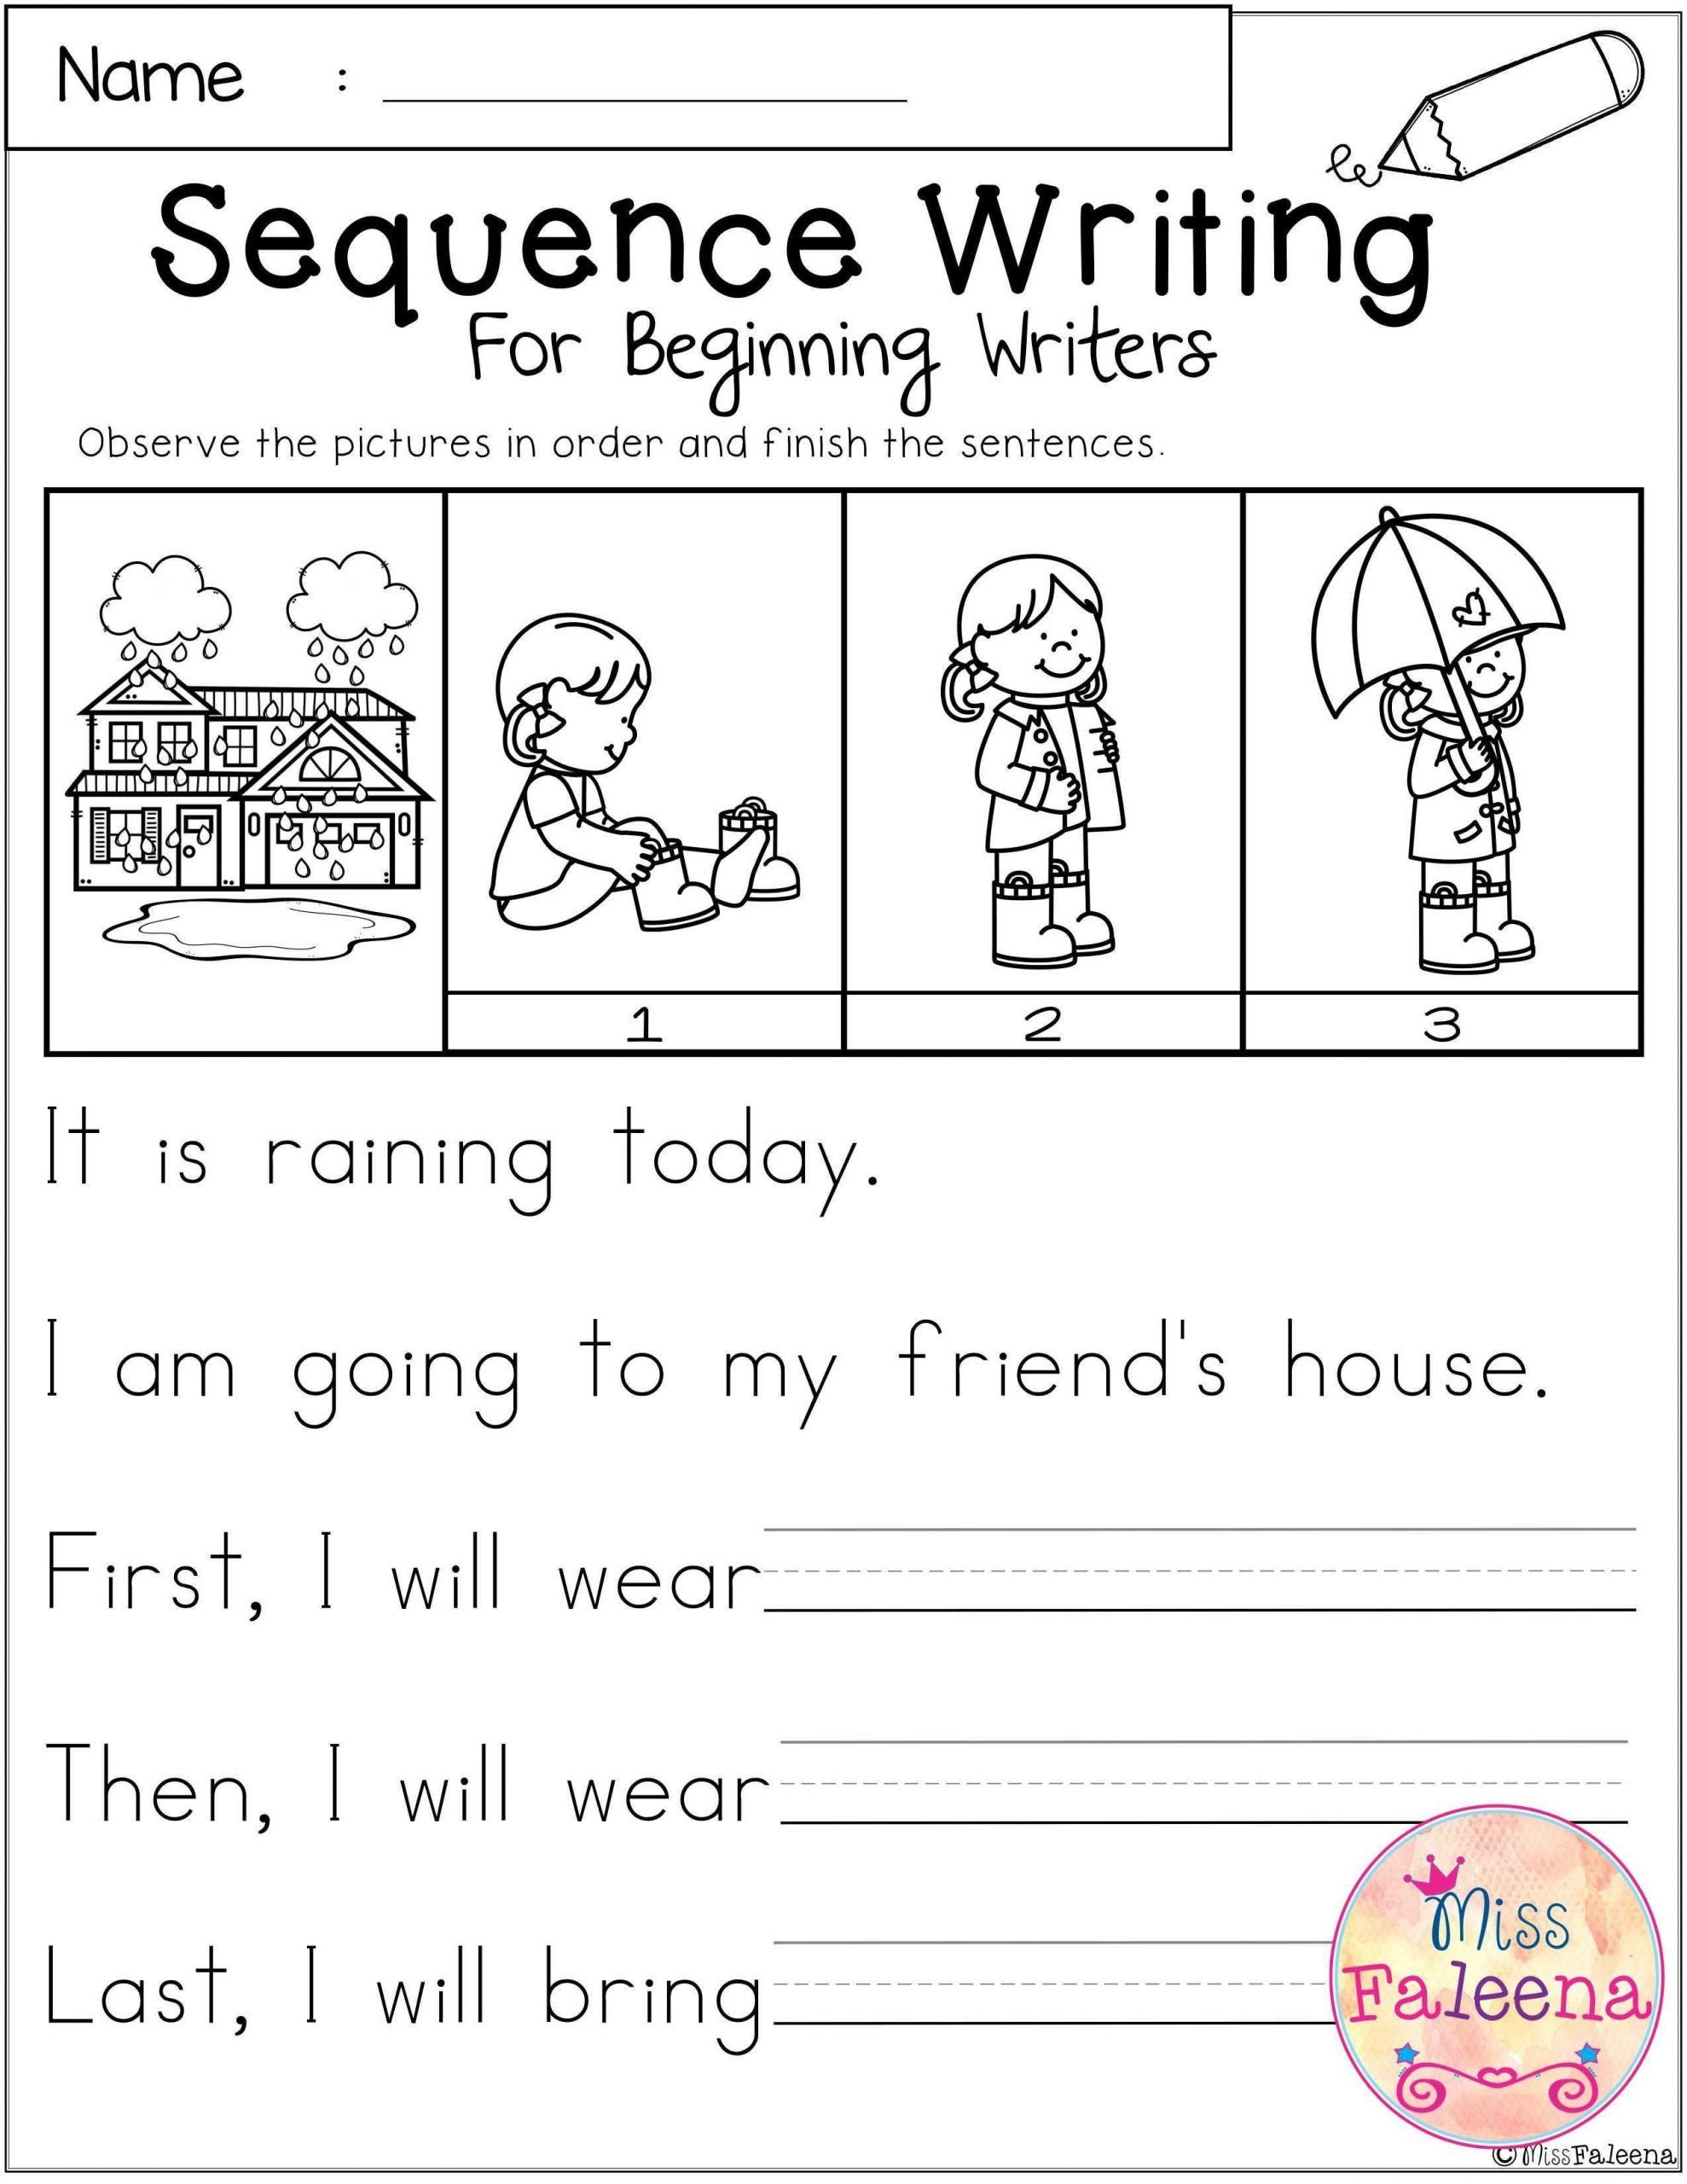 Sequencing Worksheet First Grade March Sequence Writing For Beginning Writers In 2020 Sequence Writing Kindergarten Sequencing Worksheets Sequencing Worksheets